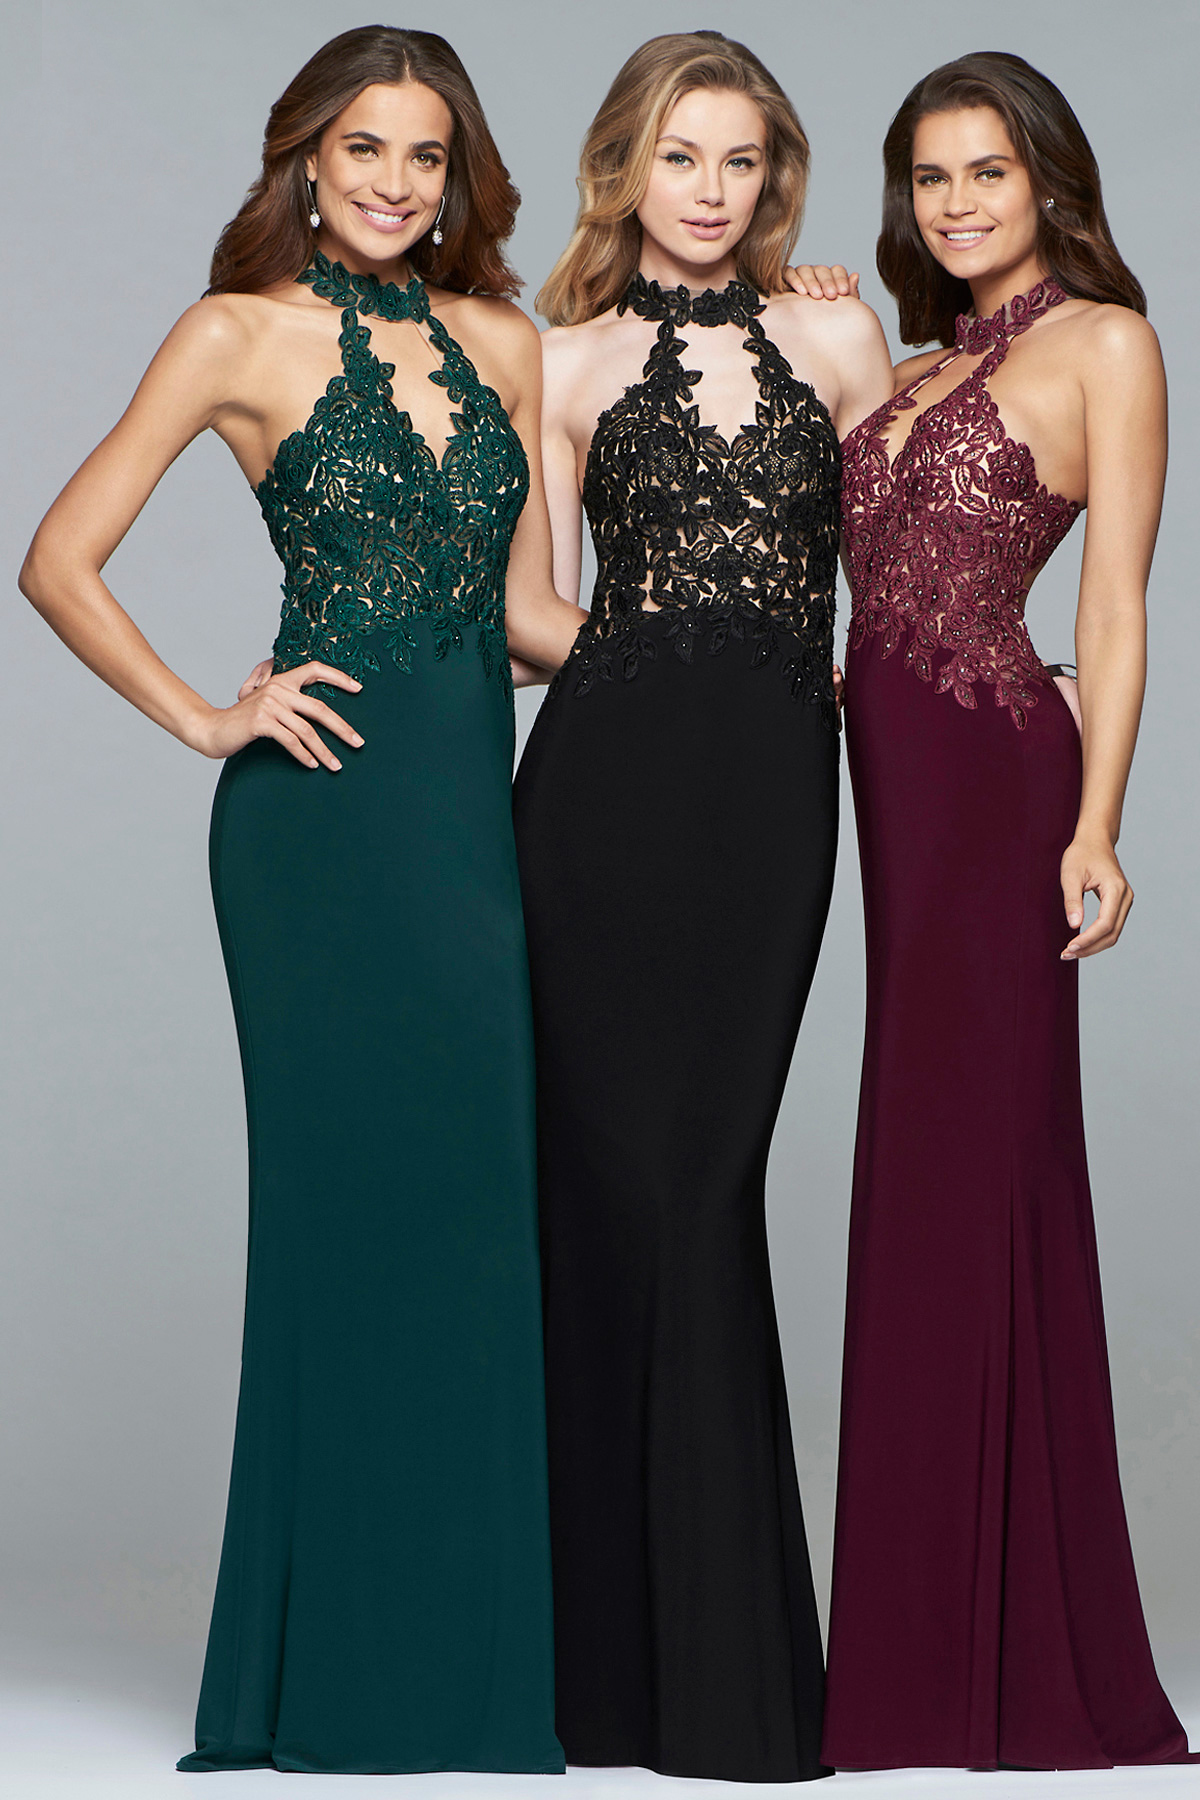 Faviana - Faviana. Girls who know, know the difference a Faviana gown makes. Easy moving fabrics and exceptional fits- a Faviana gown is a special keepsake.